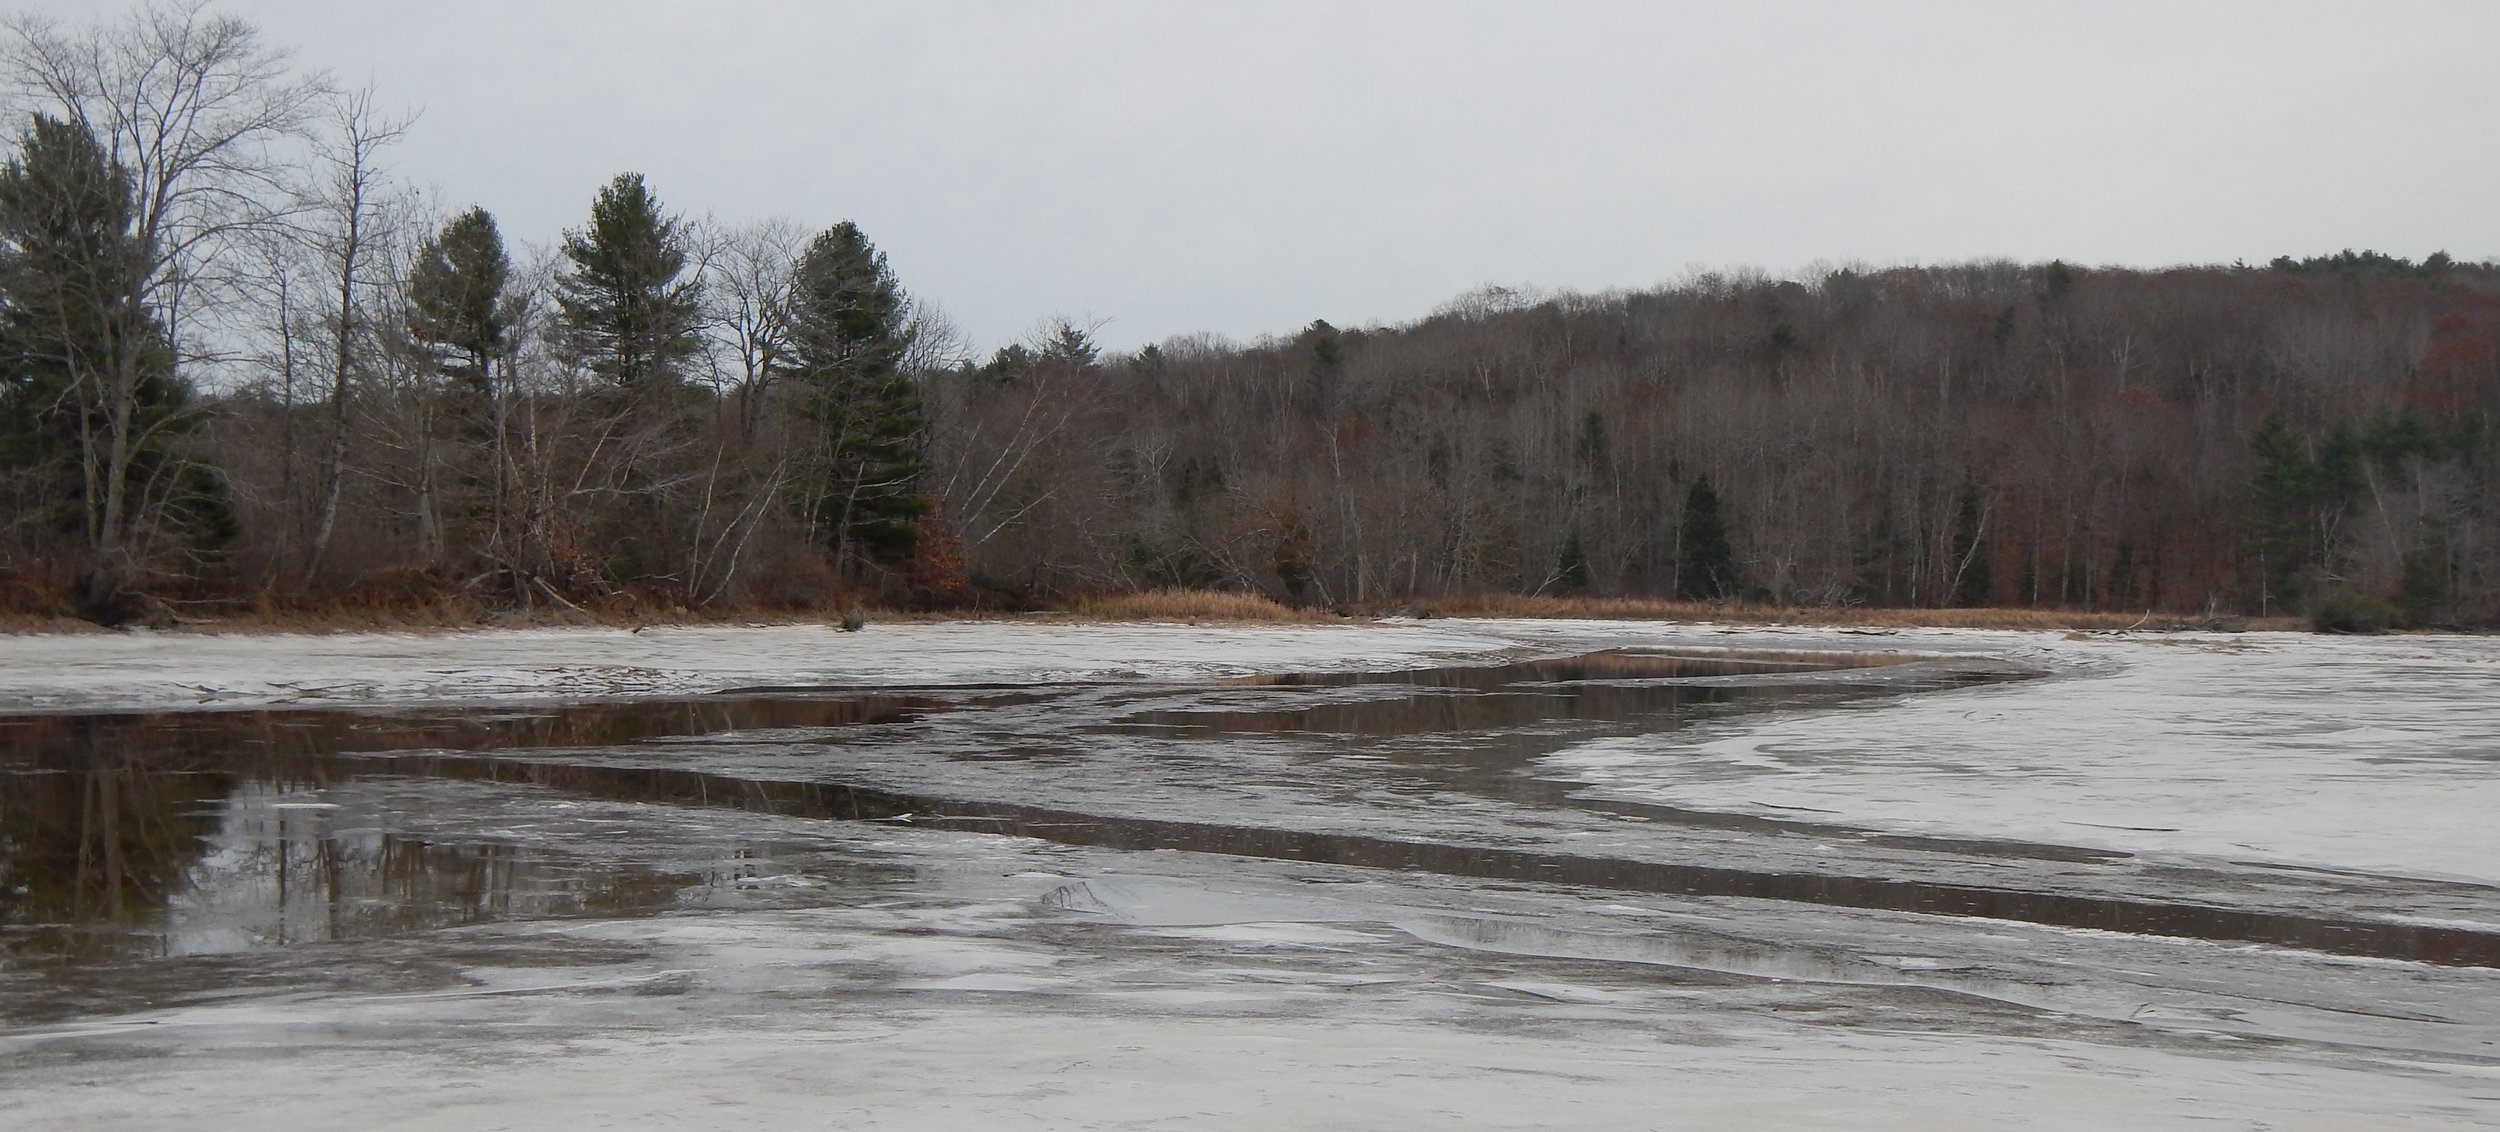 Eastern River Preserve, Photo: Theresa Kerchner